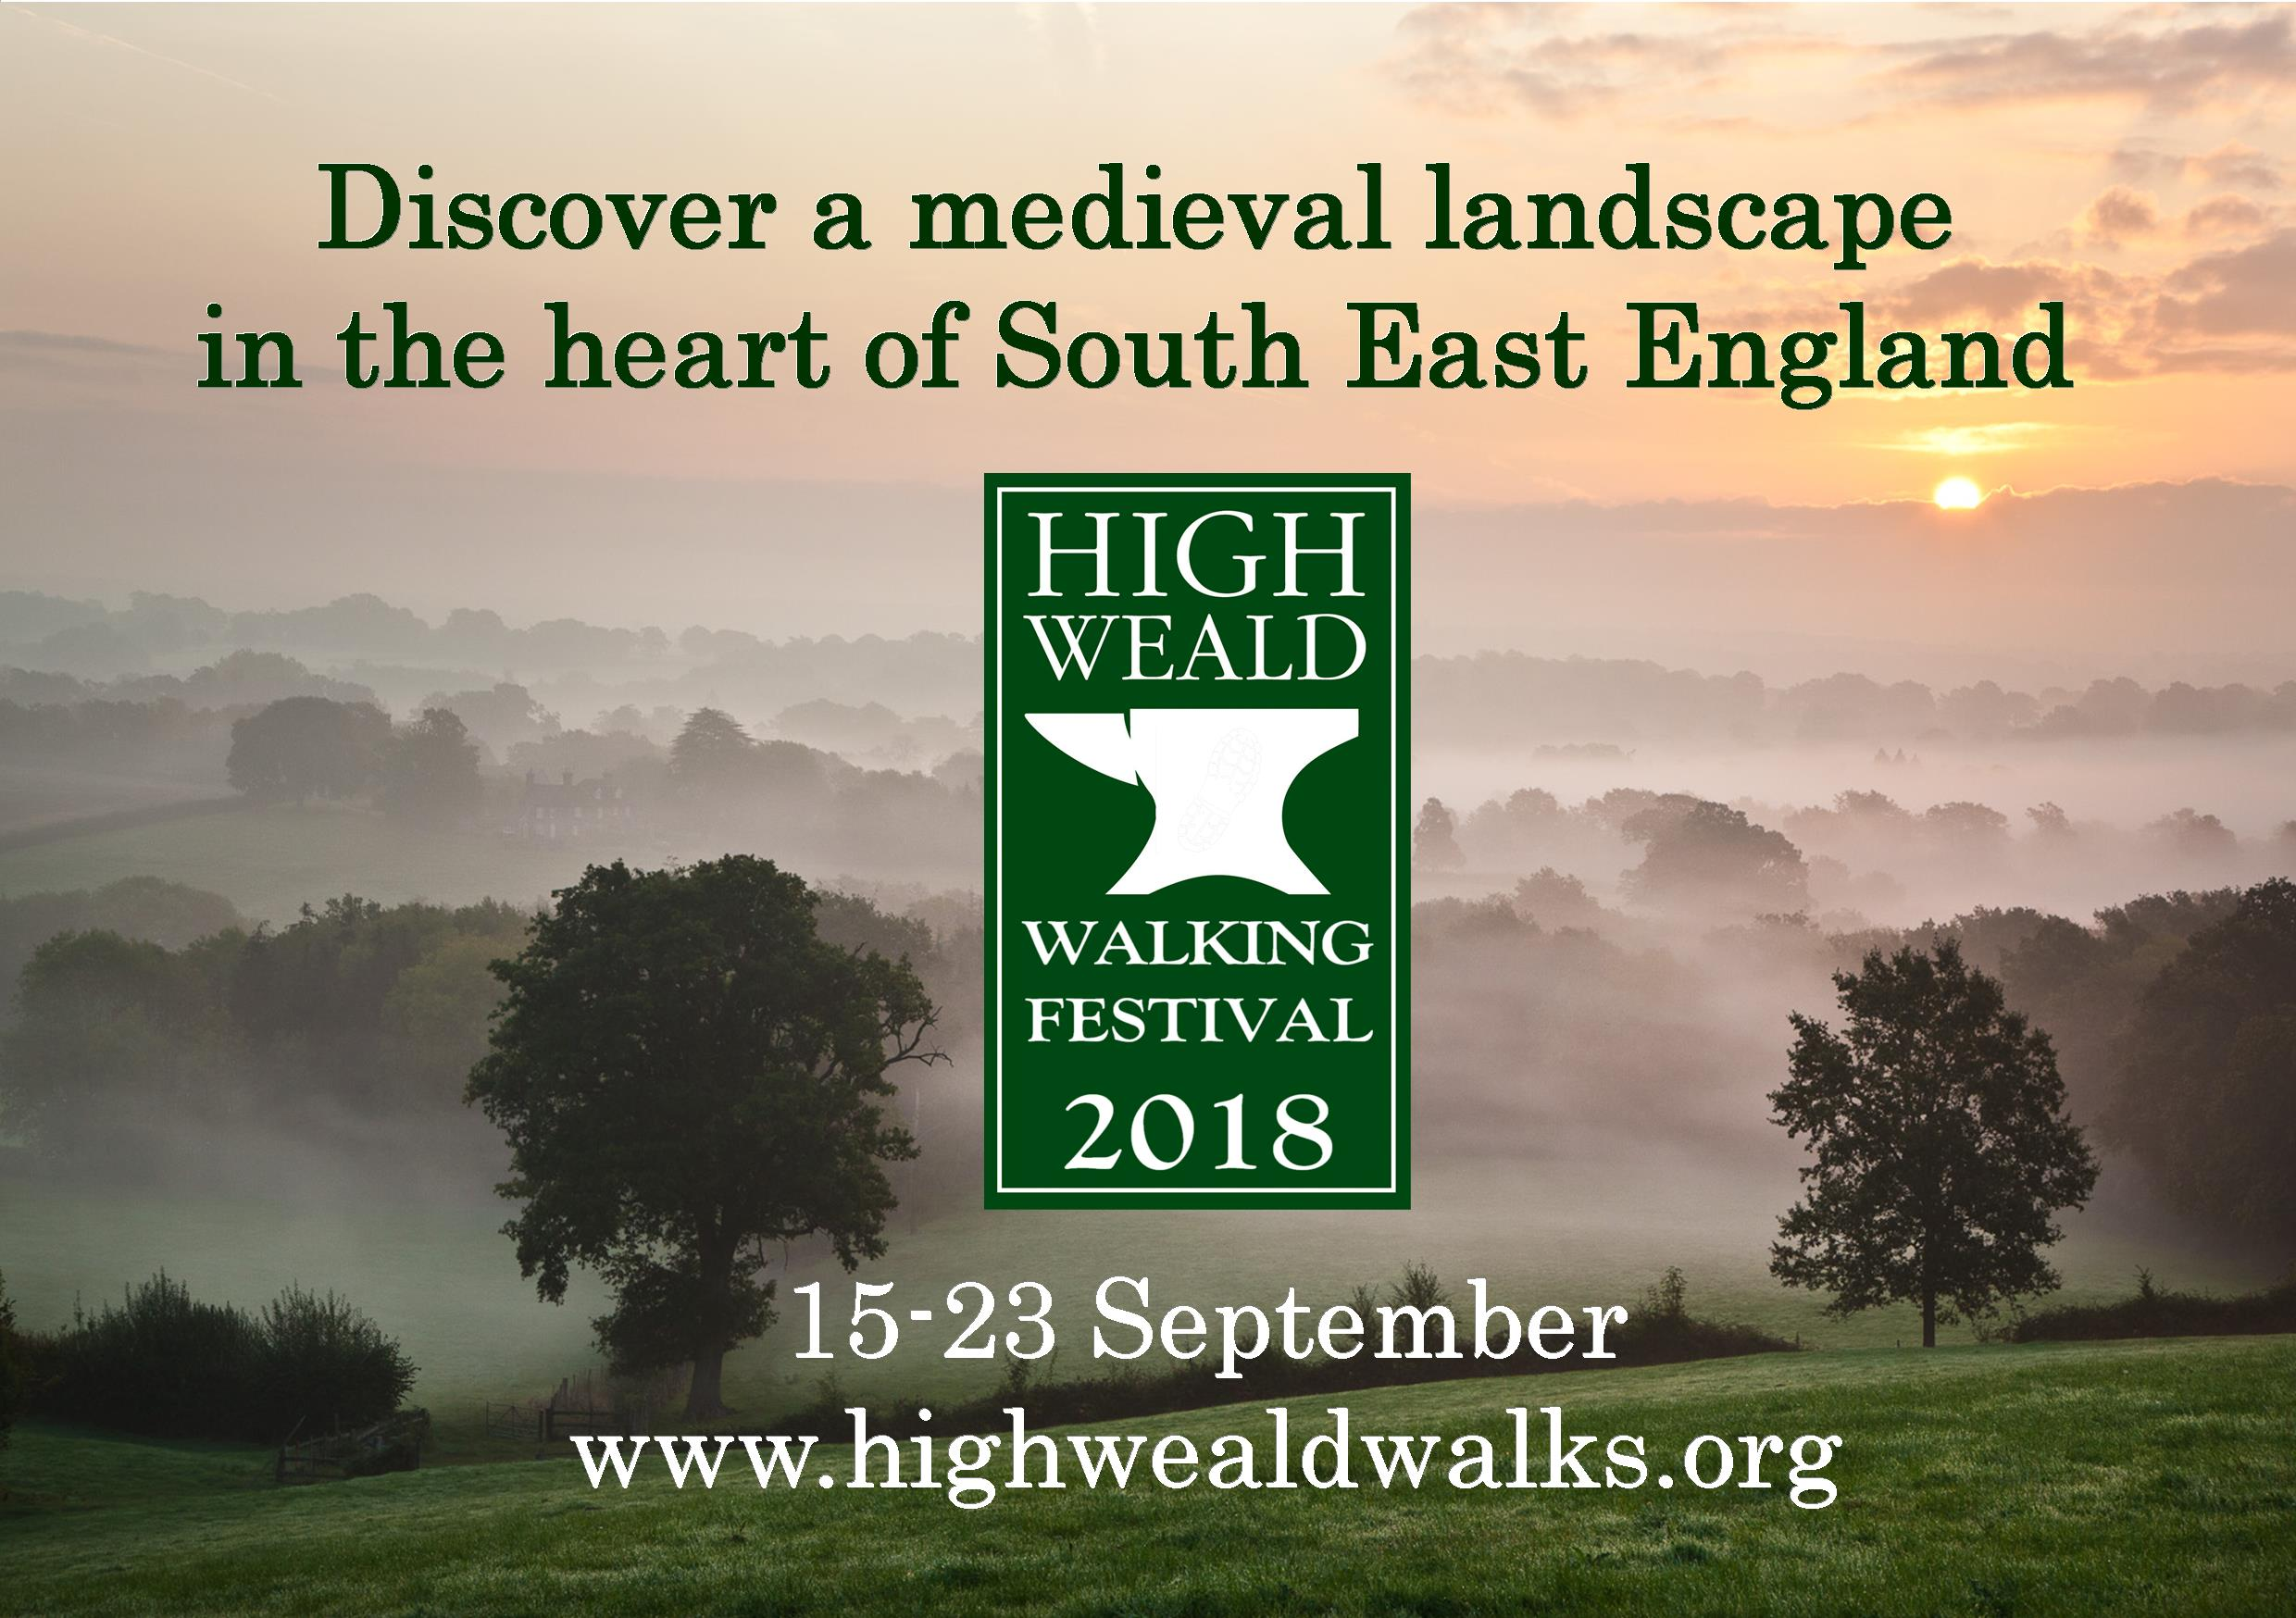 Walking Festival to showcase High Weald landscape